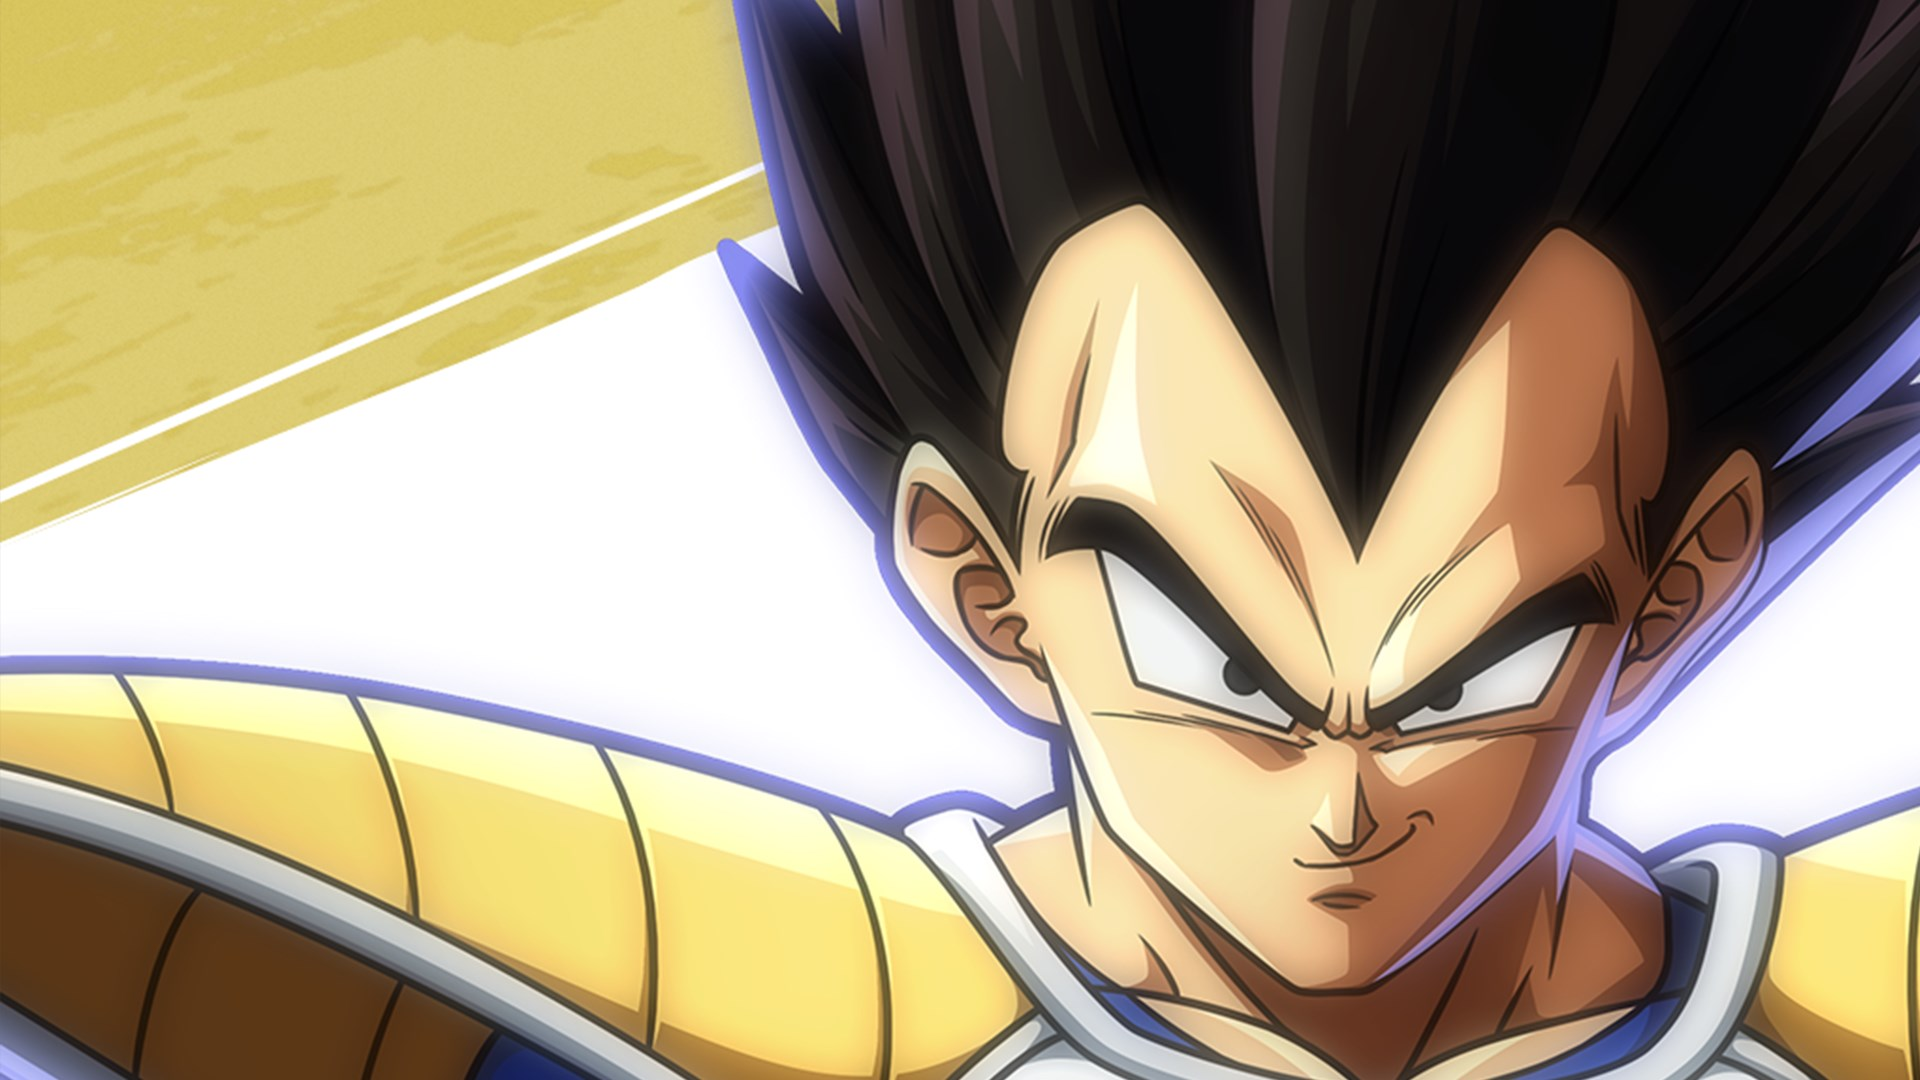 DRAGON BALL FIGHTERZ - Vegeta